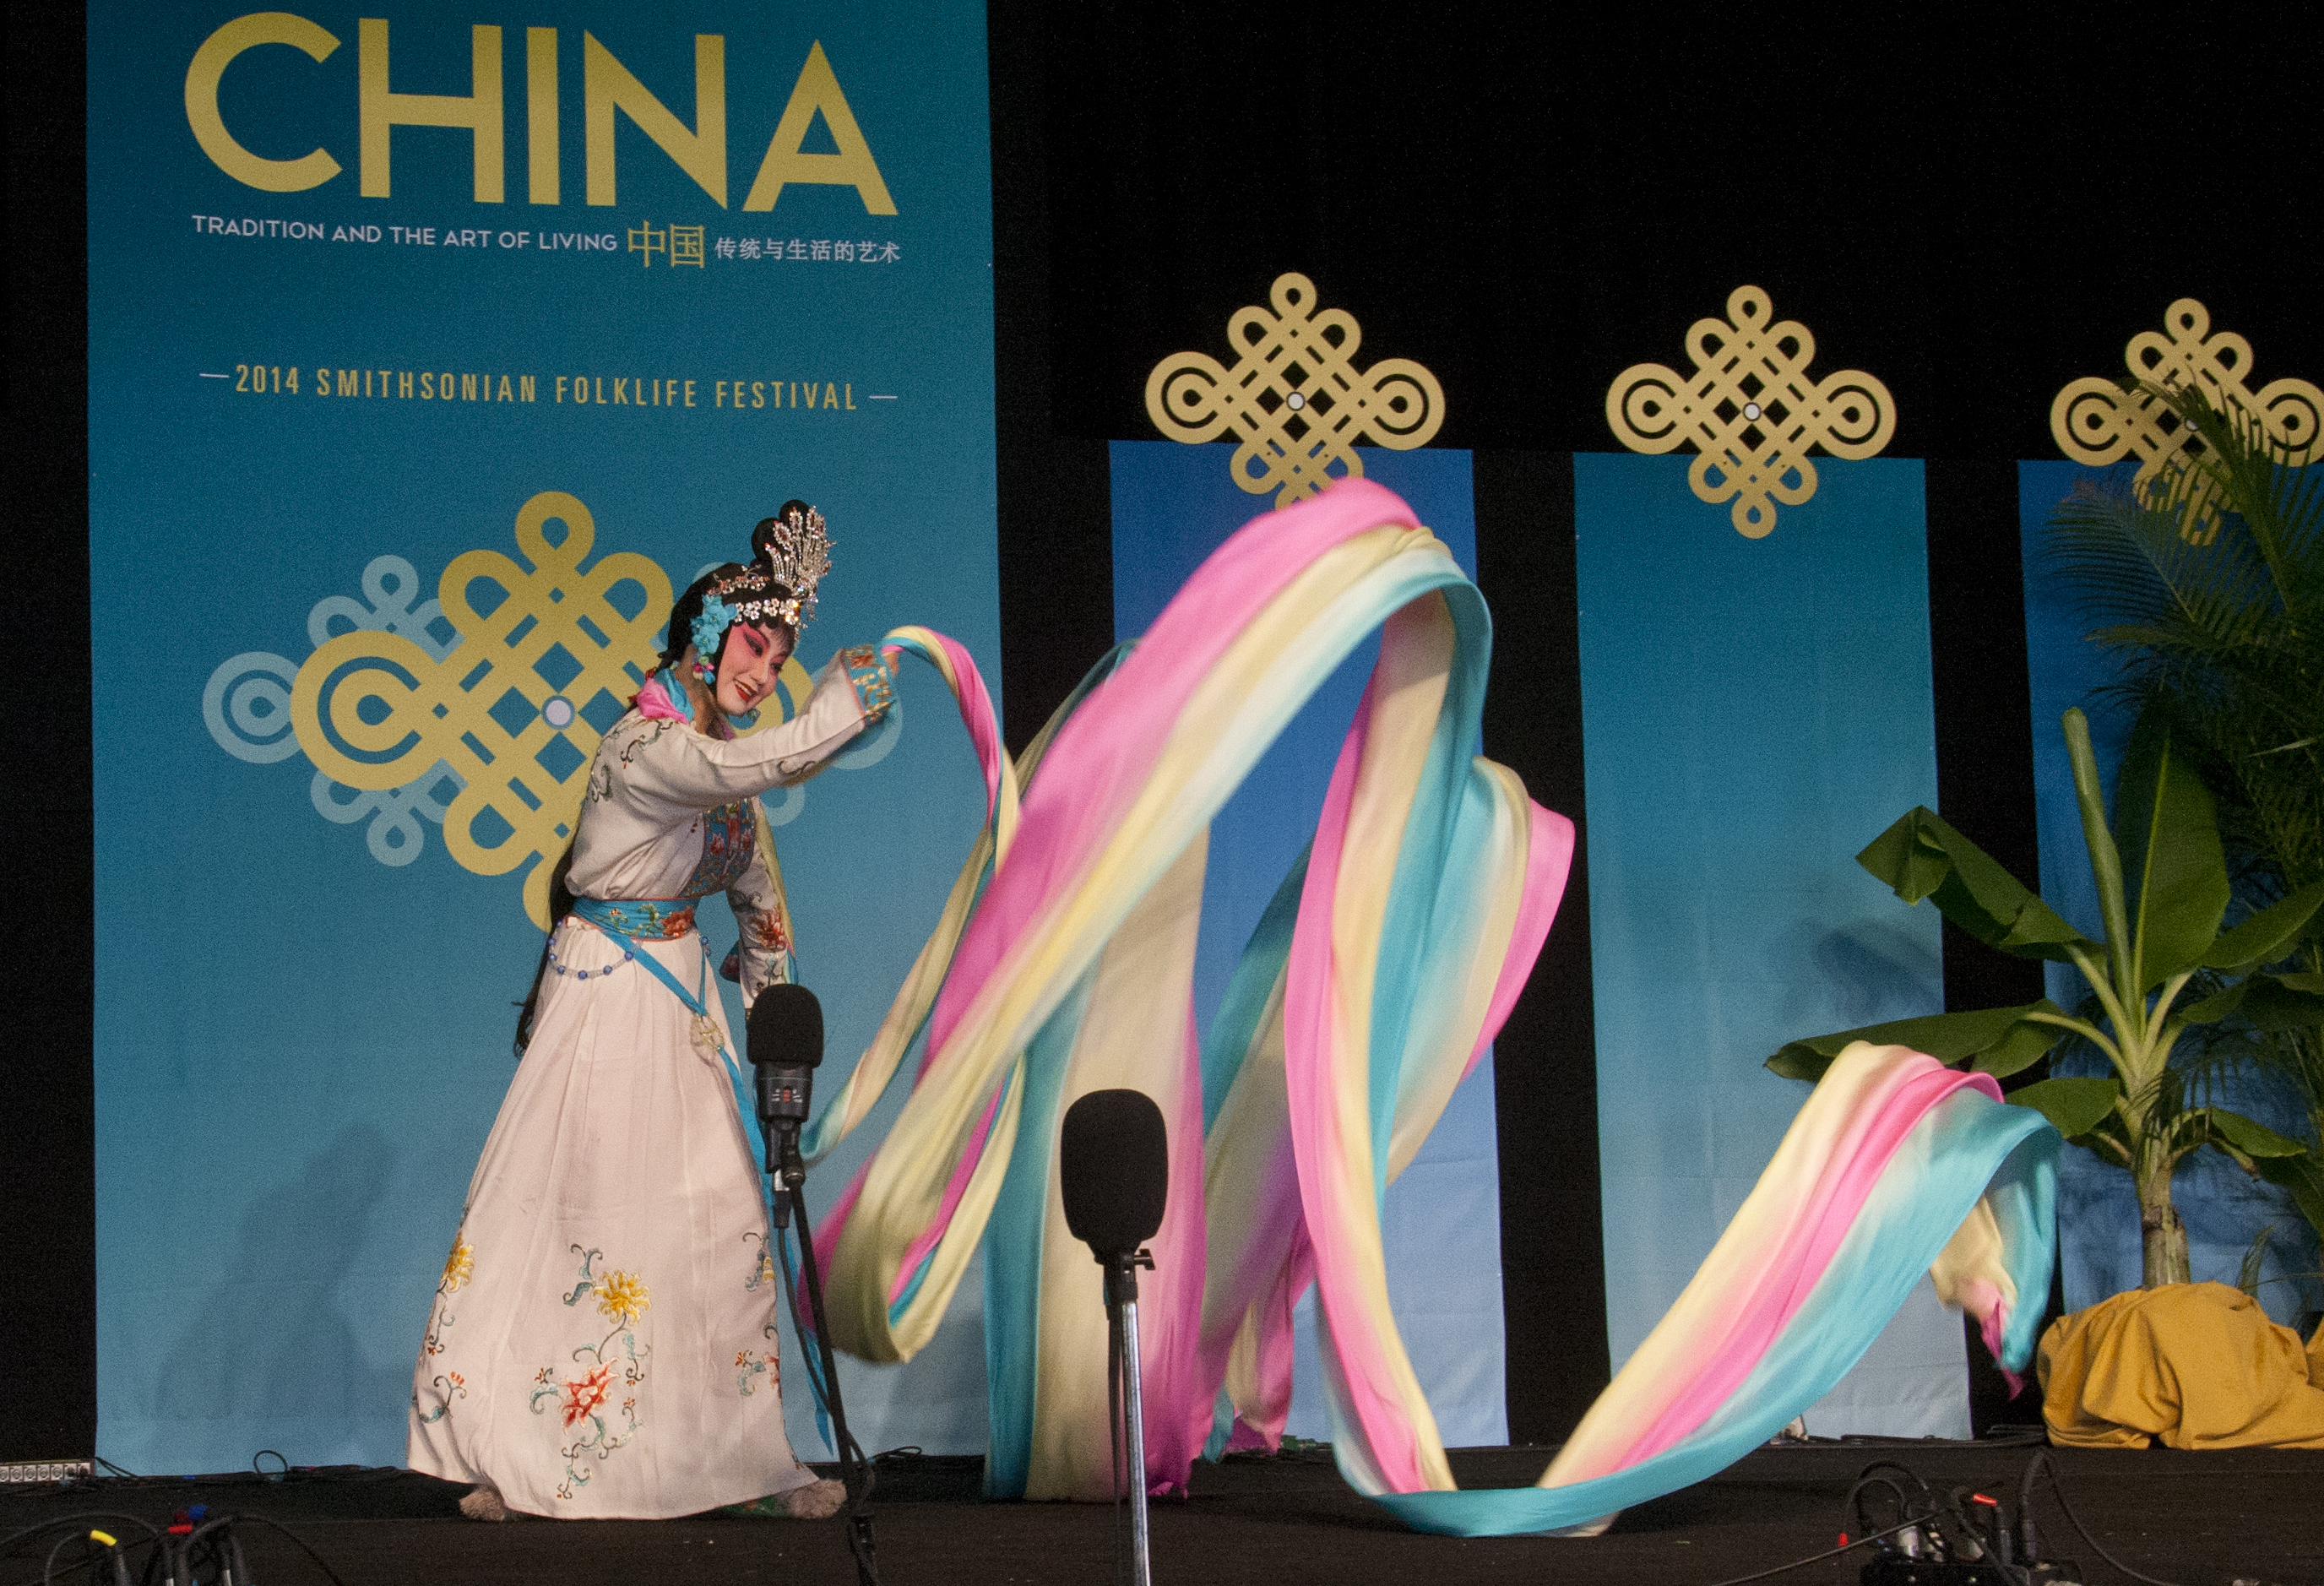 A singer with the Zhejiang Wu Opera Troupe performs at the Folklife Festival on Thursday. (Photo: smata2/flickr)